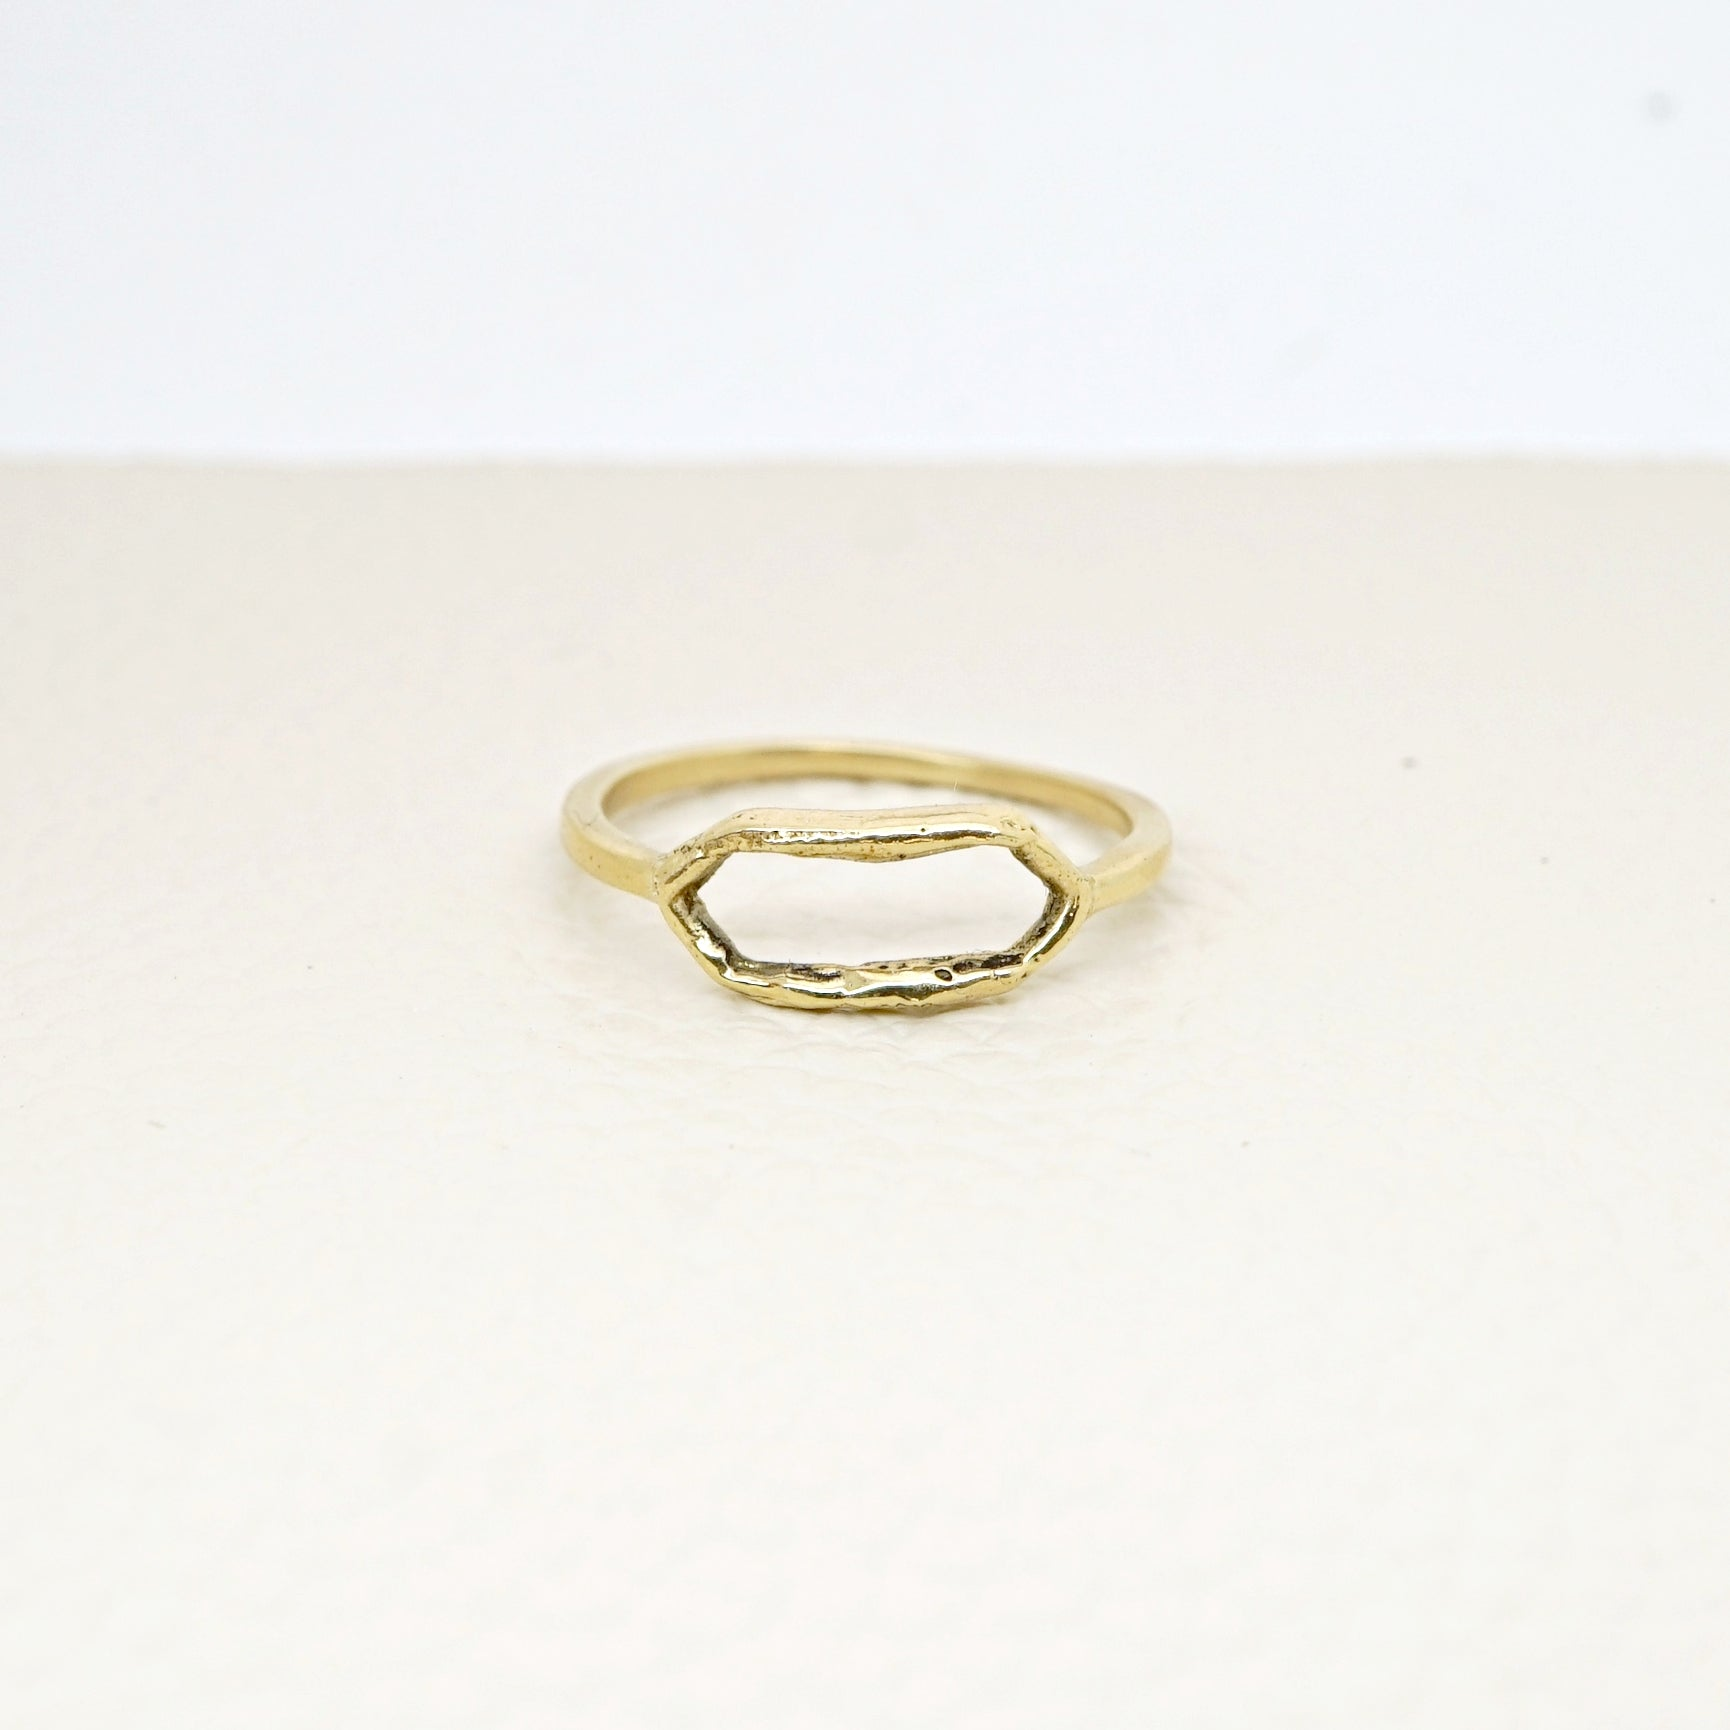 Open signet ring in 14k gold